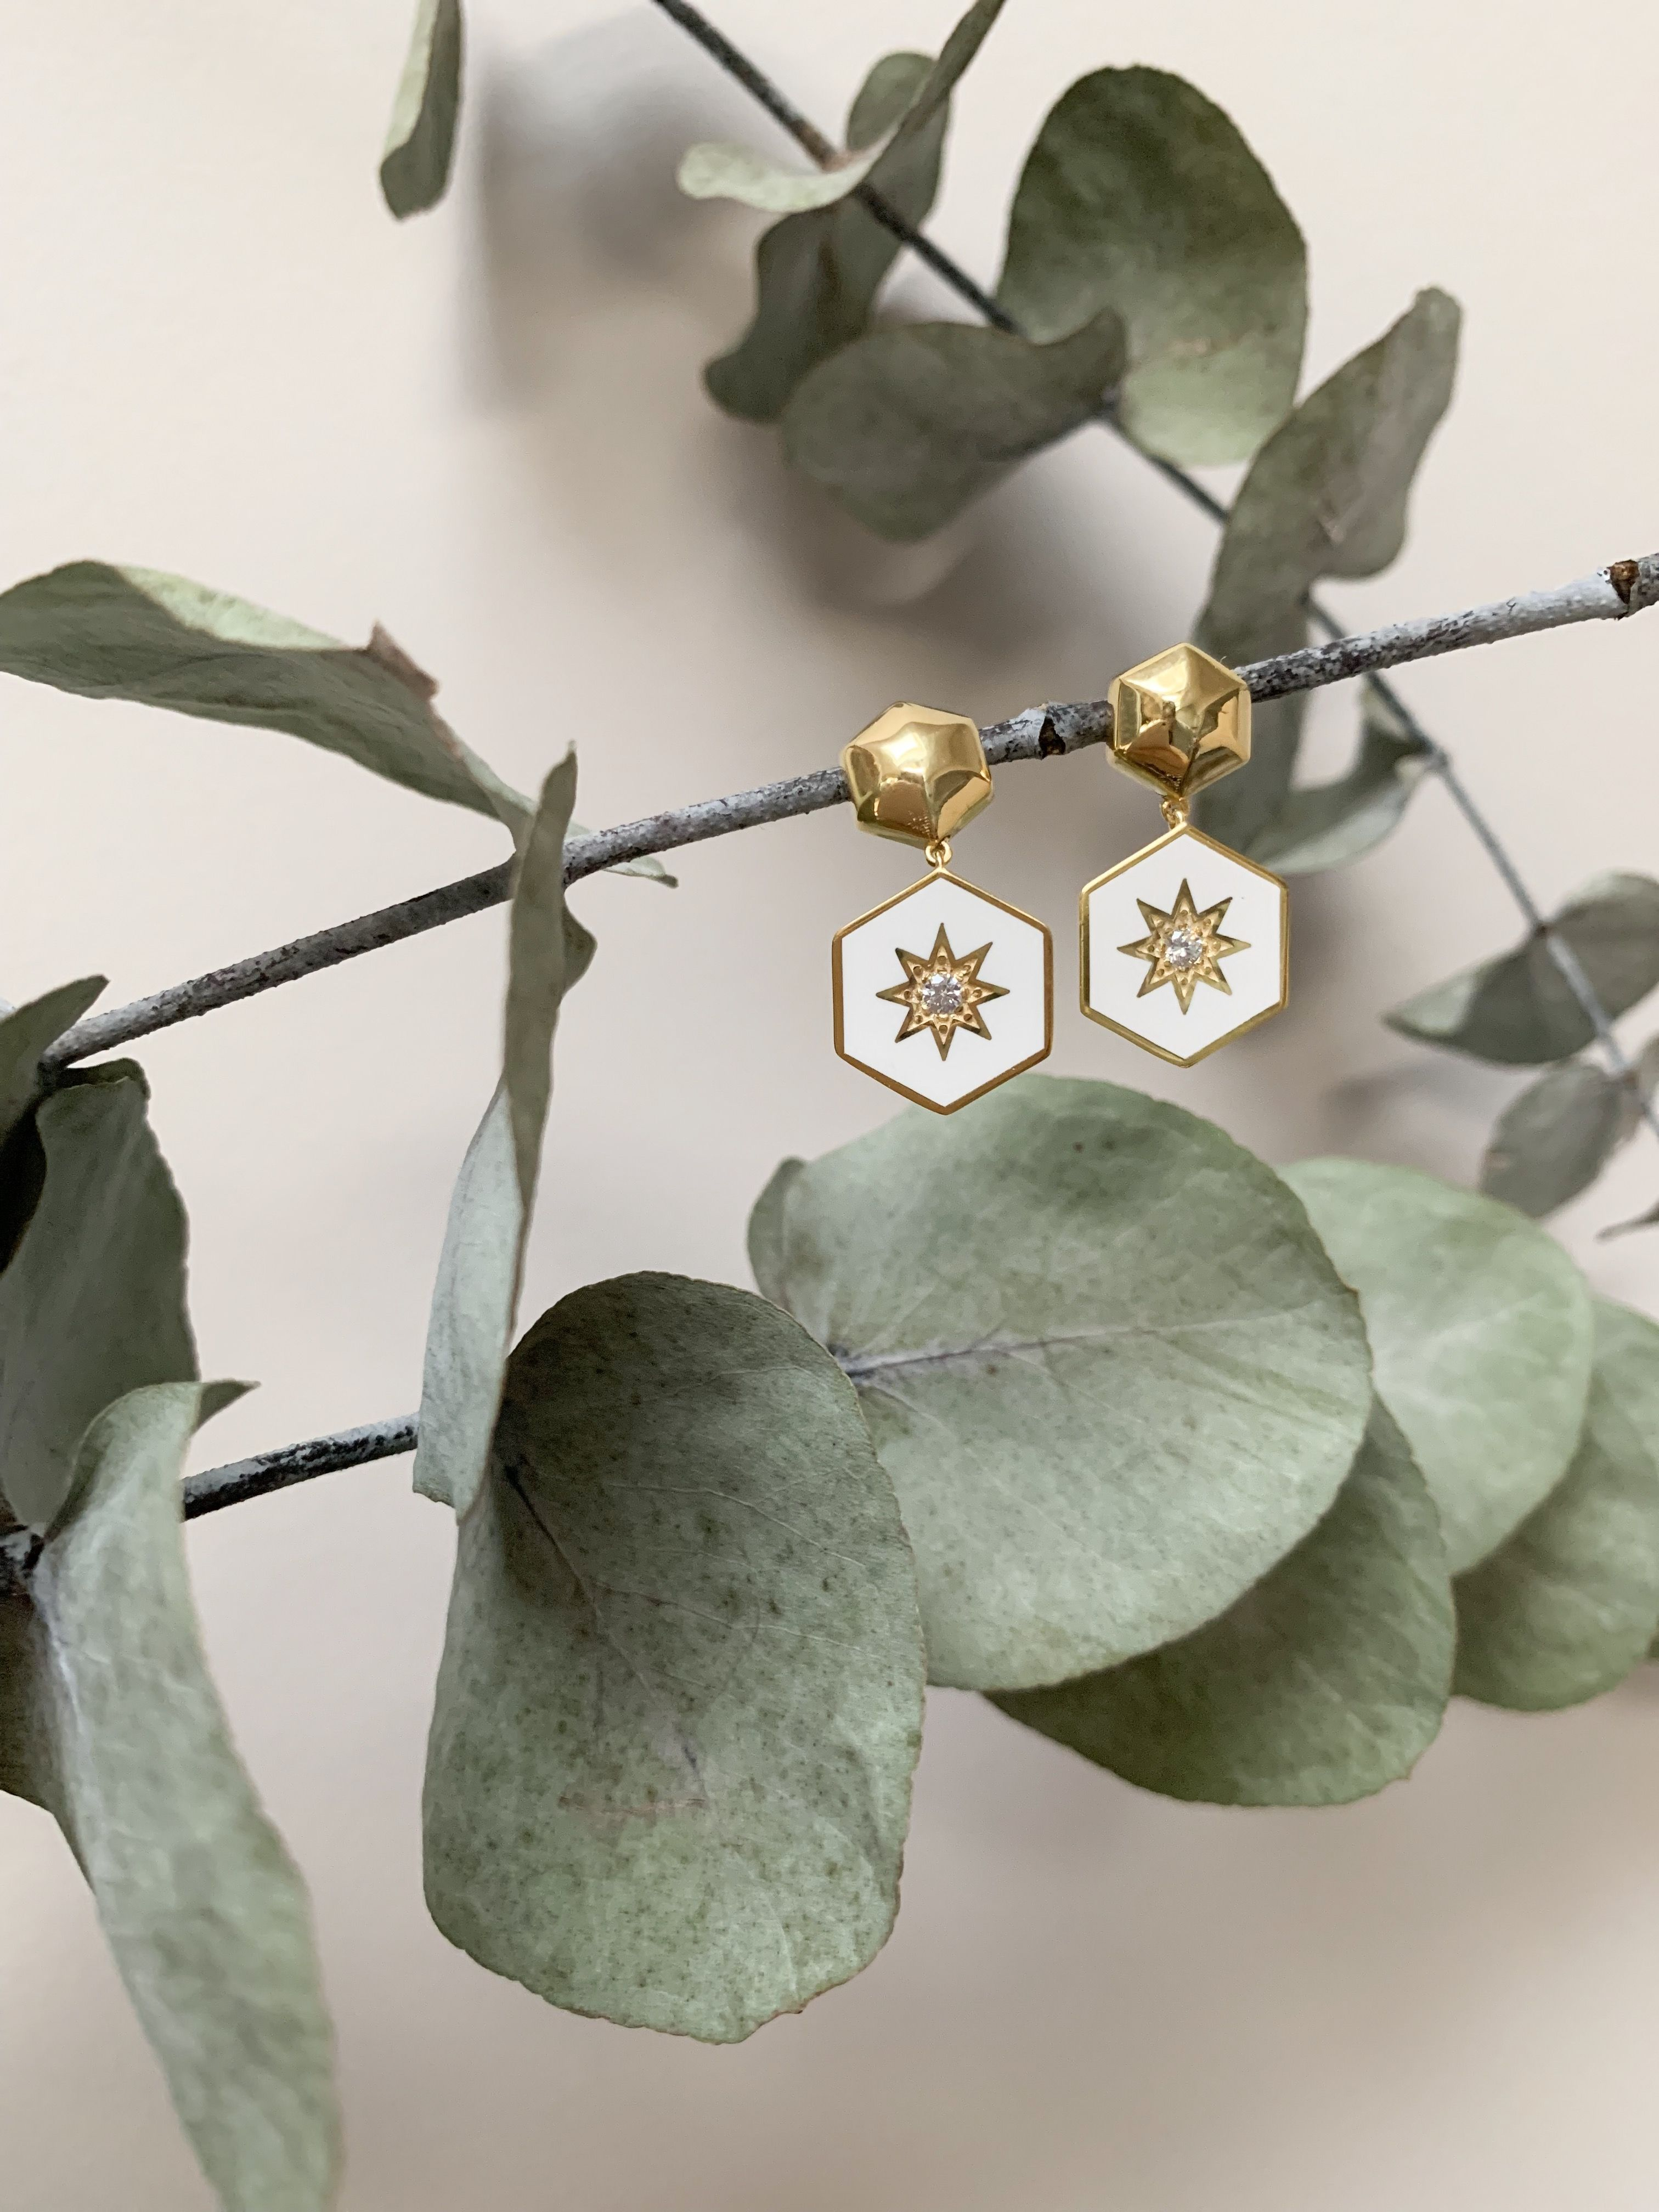 fd0785b2616a The gorgeous star earrings are perfect for lovers of vintage style.  Handcrafted in enamel they